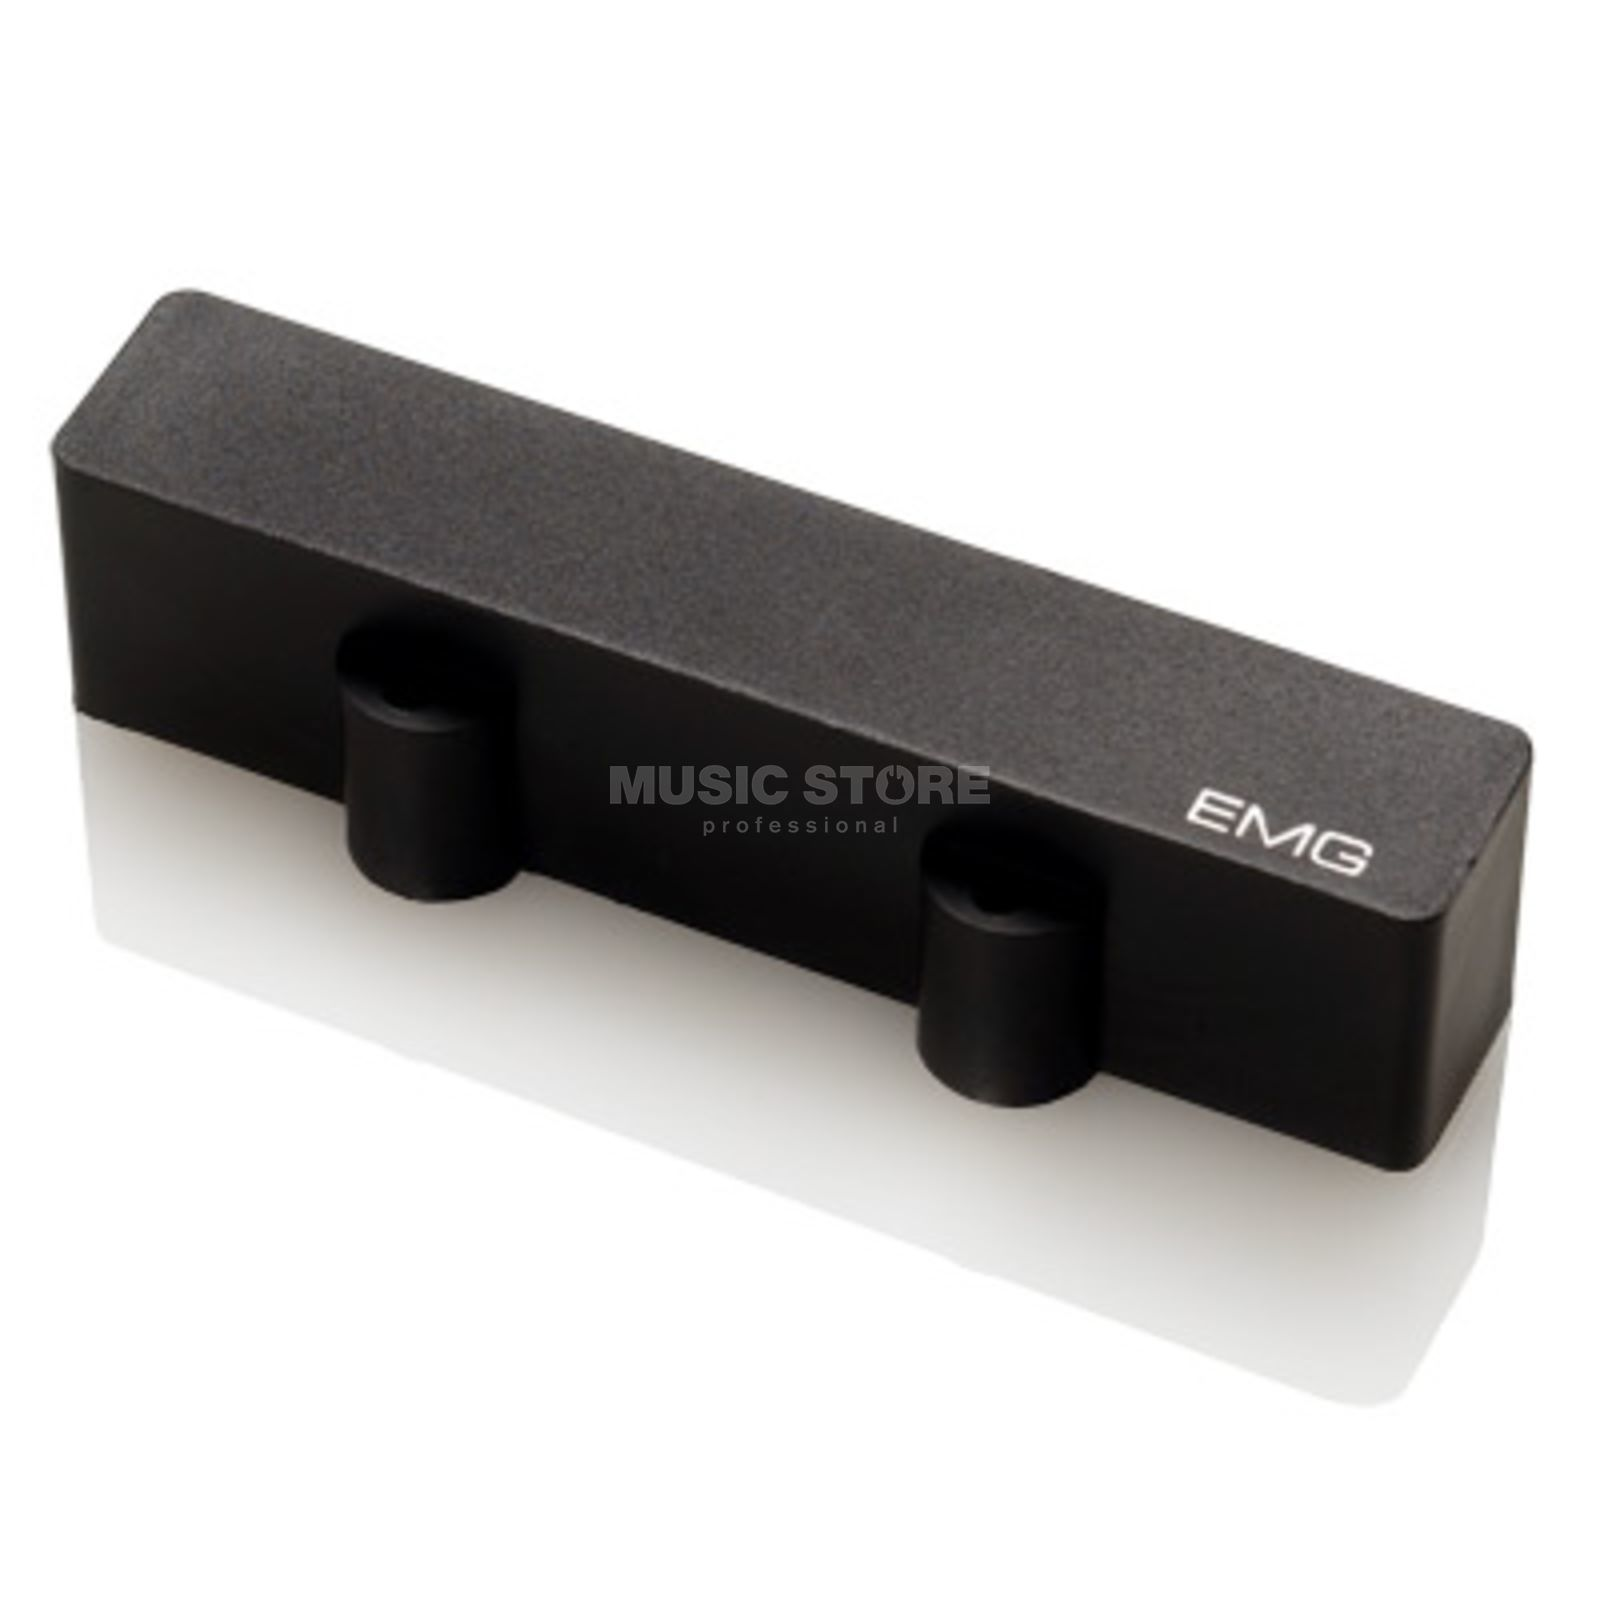 EMG EMG LJ SINGLE LONG BLACK    Immagine prodotto